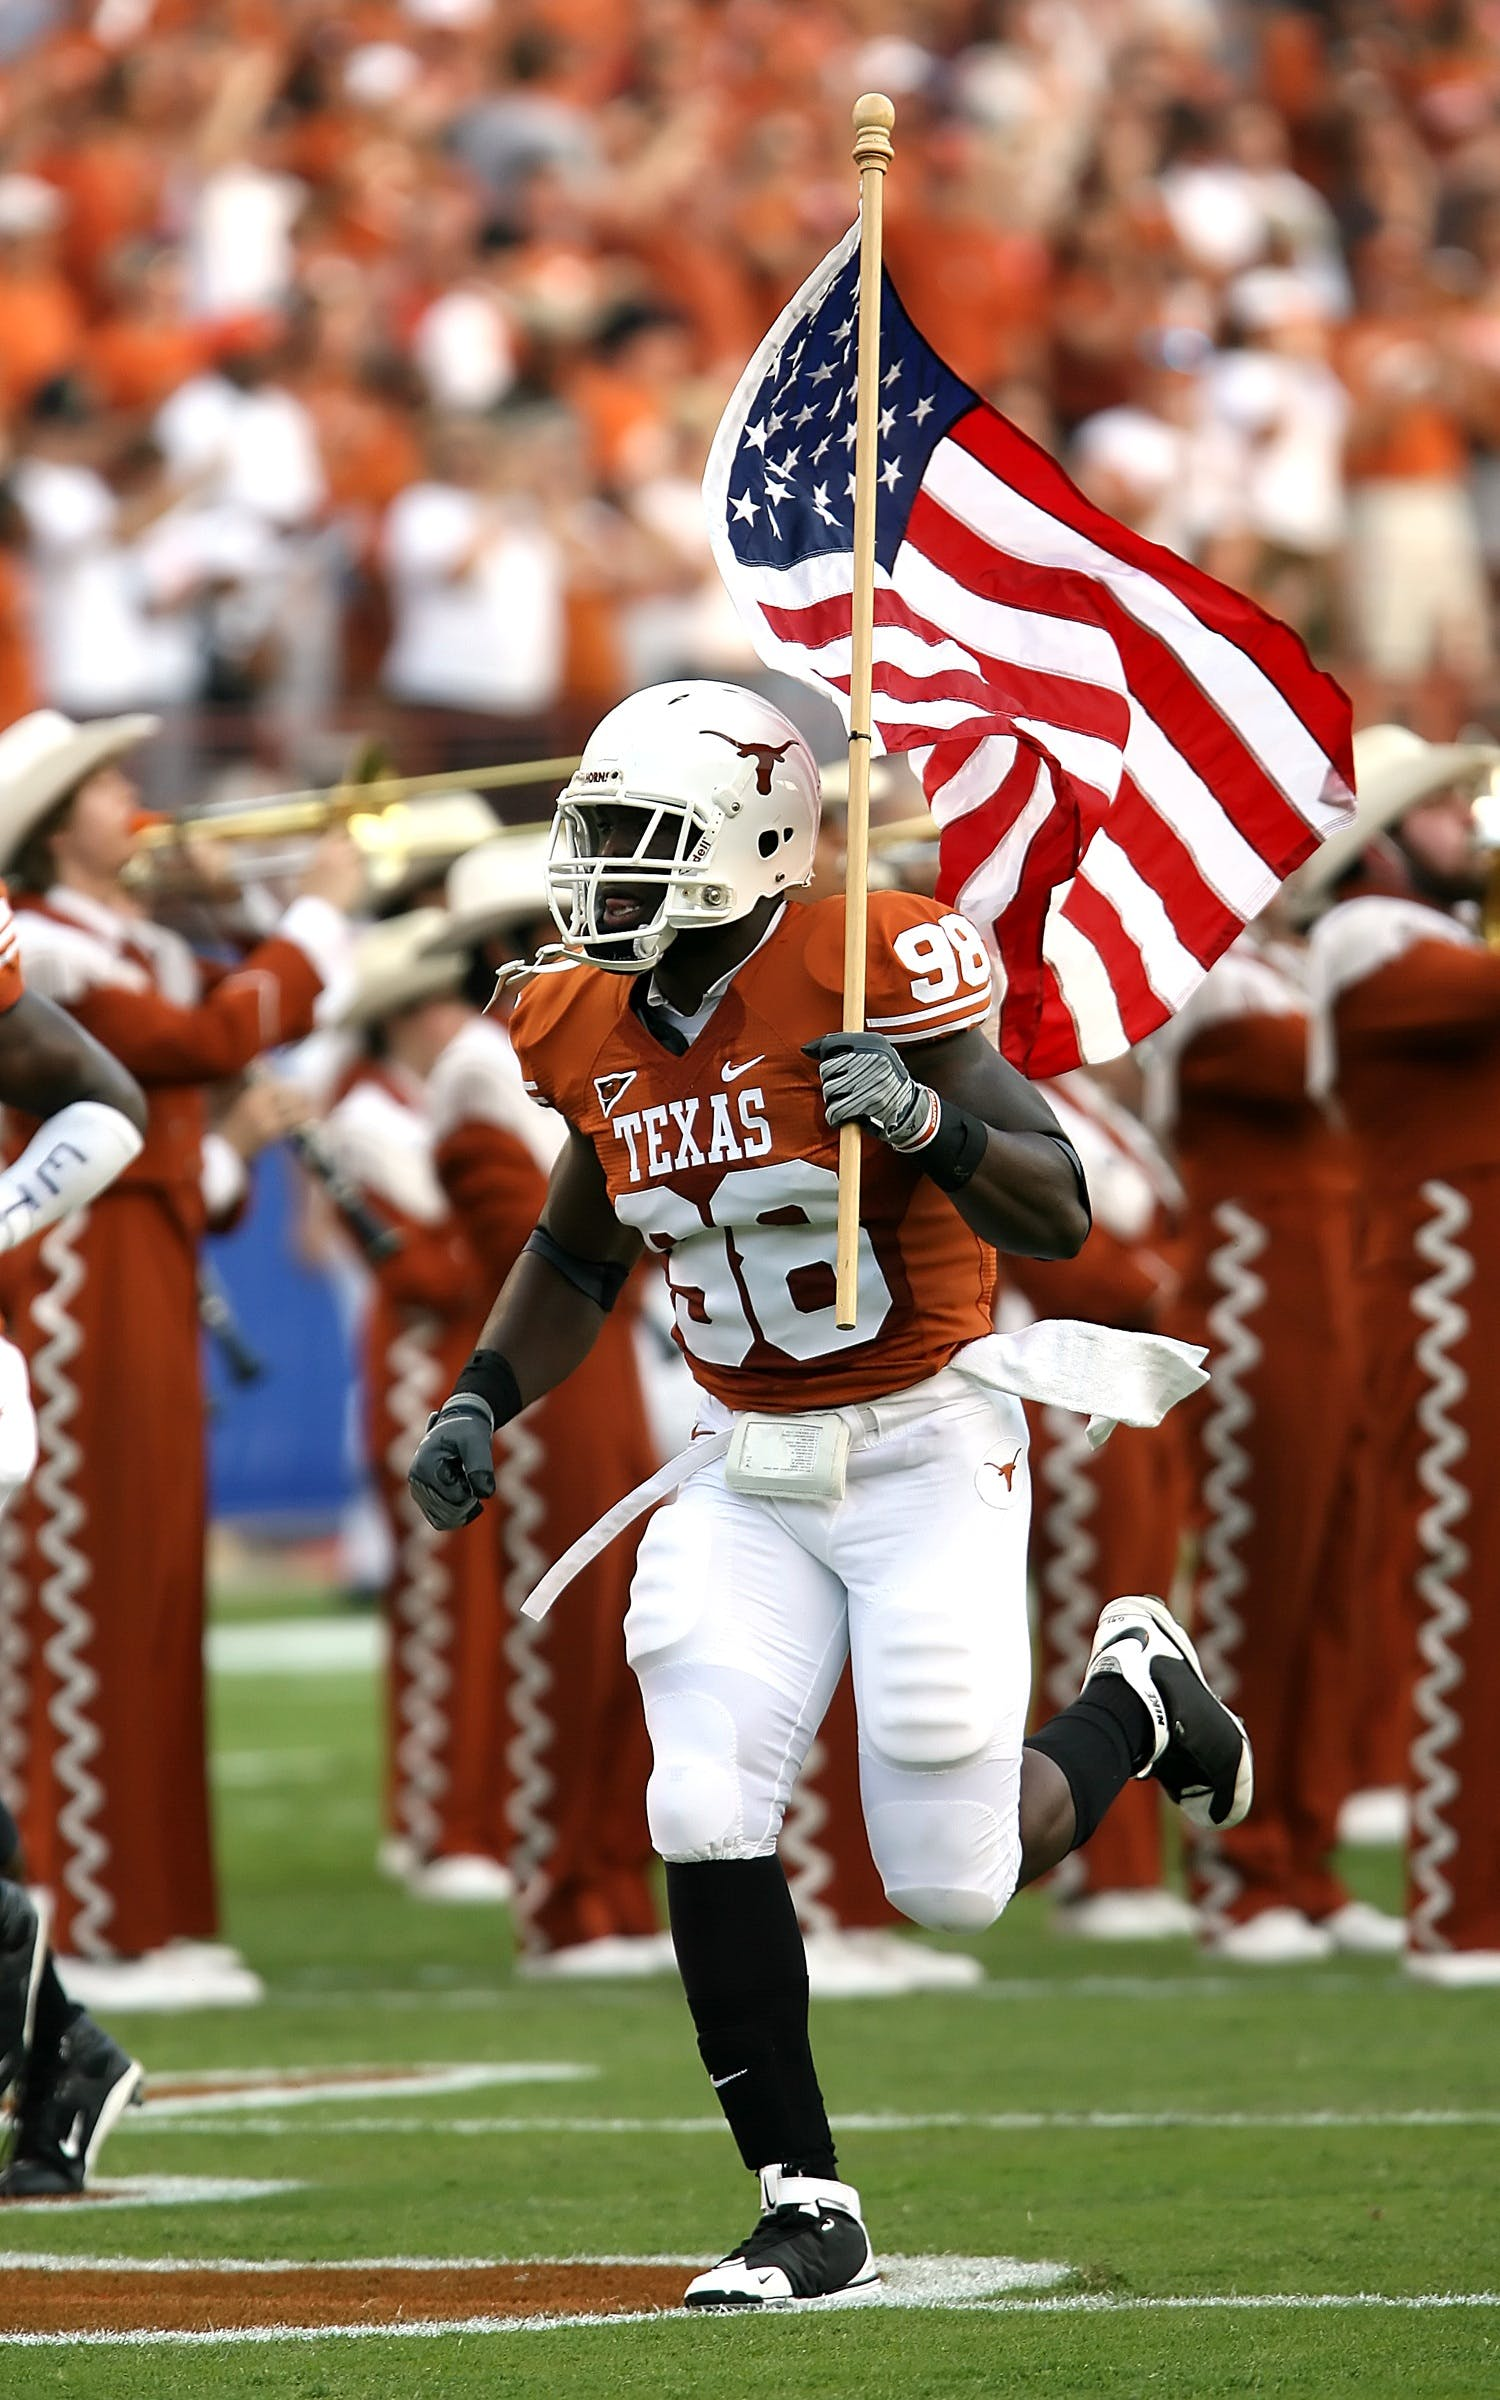 Nfl Player Holding U.s.a. Flag on Field